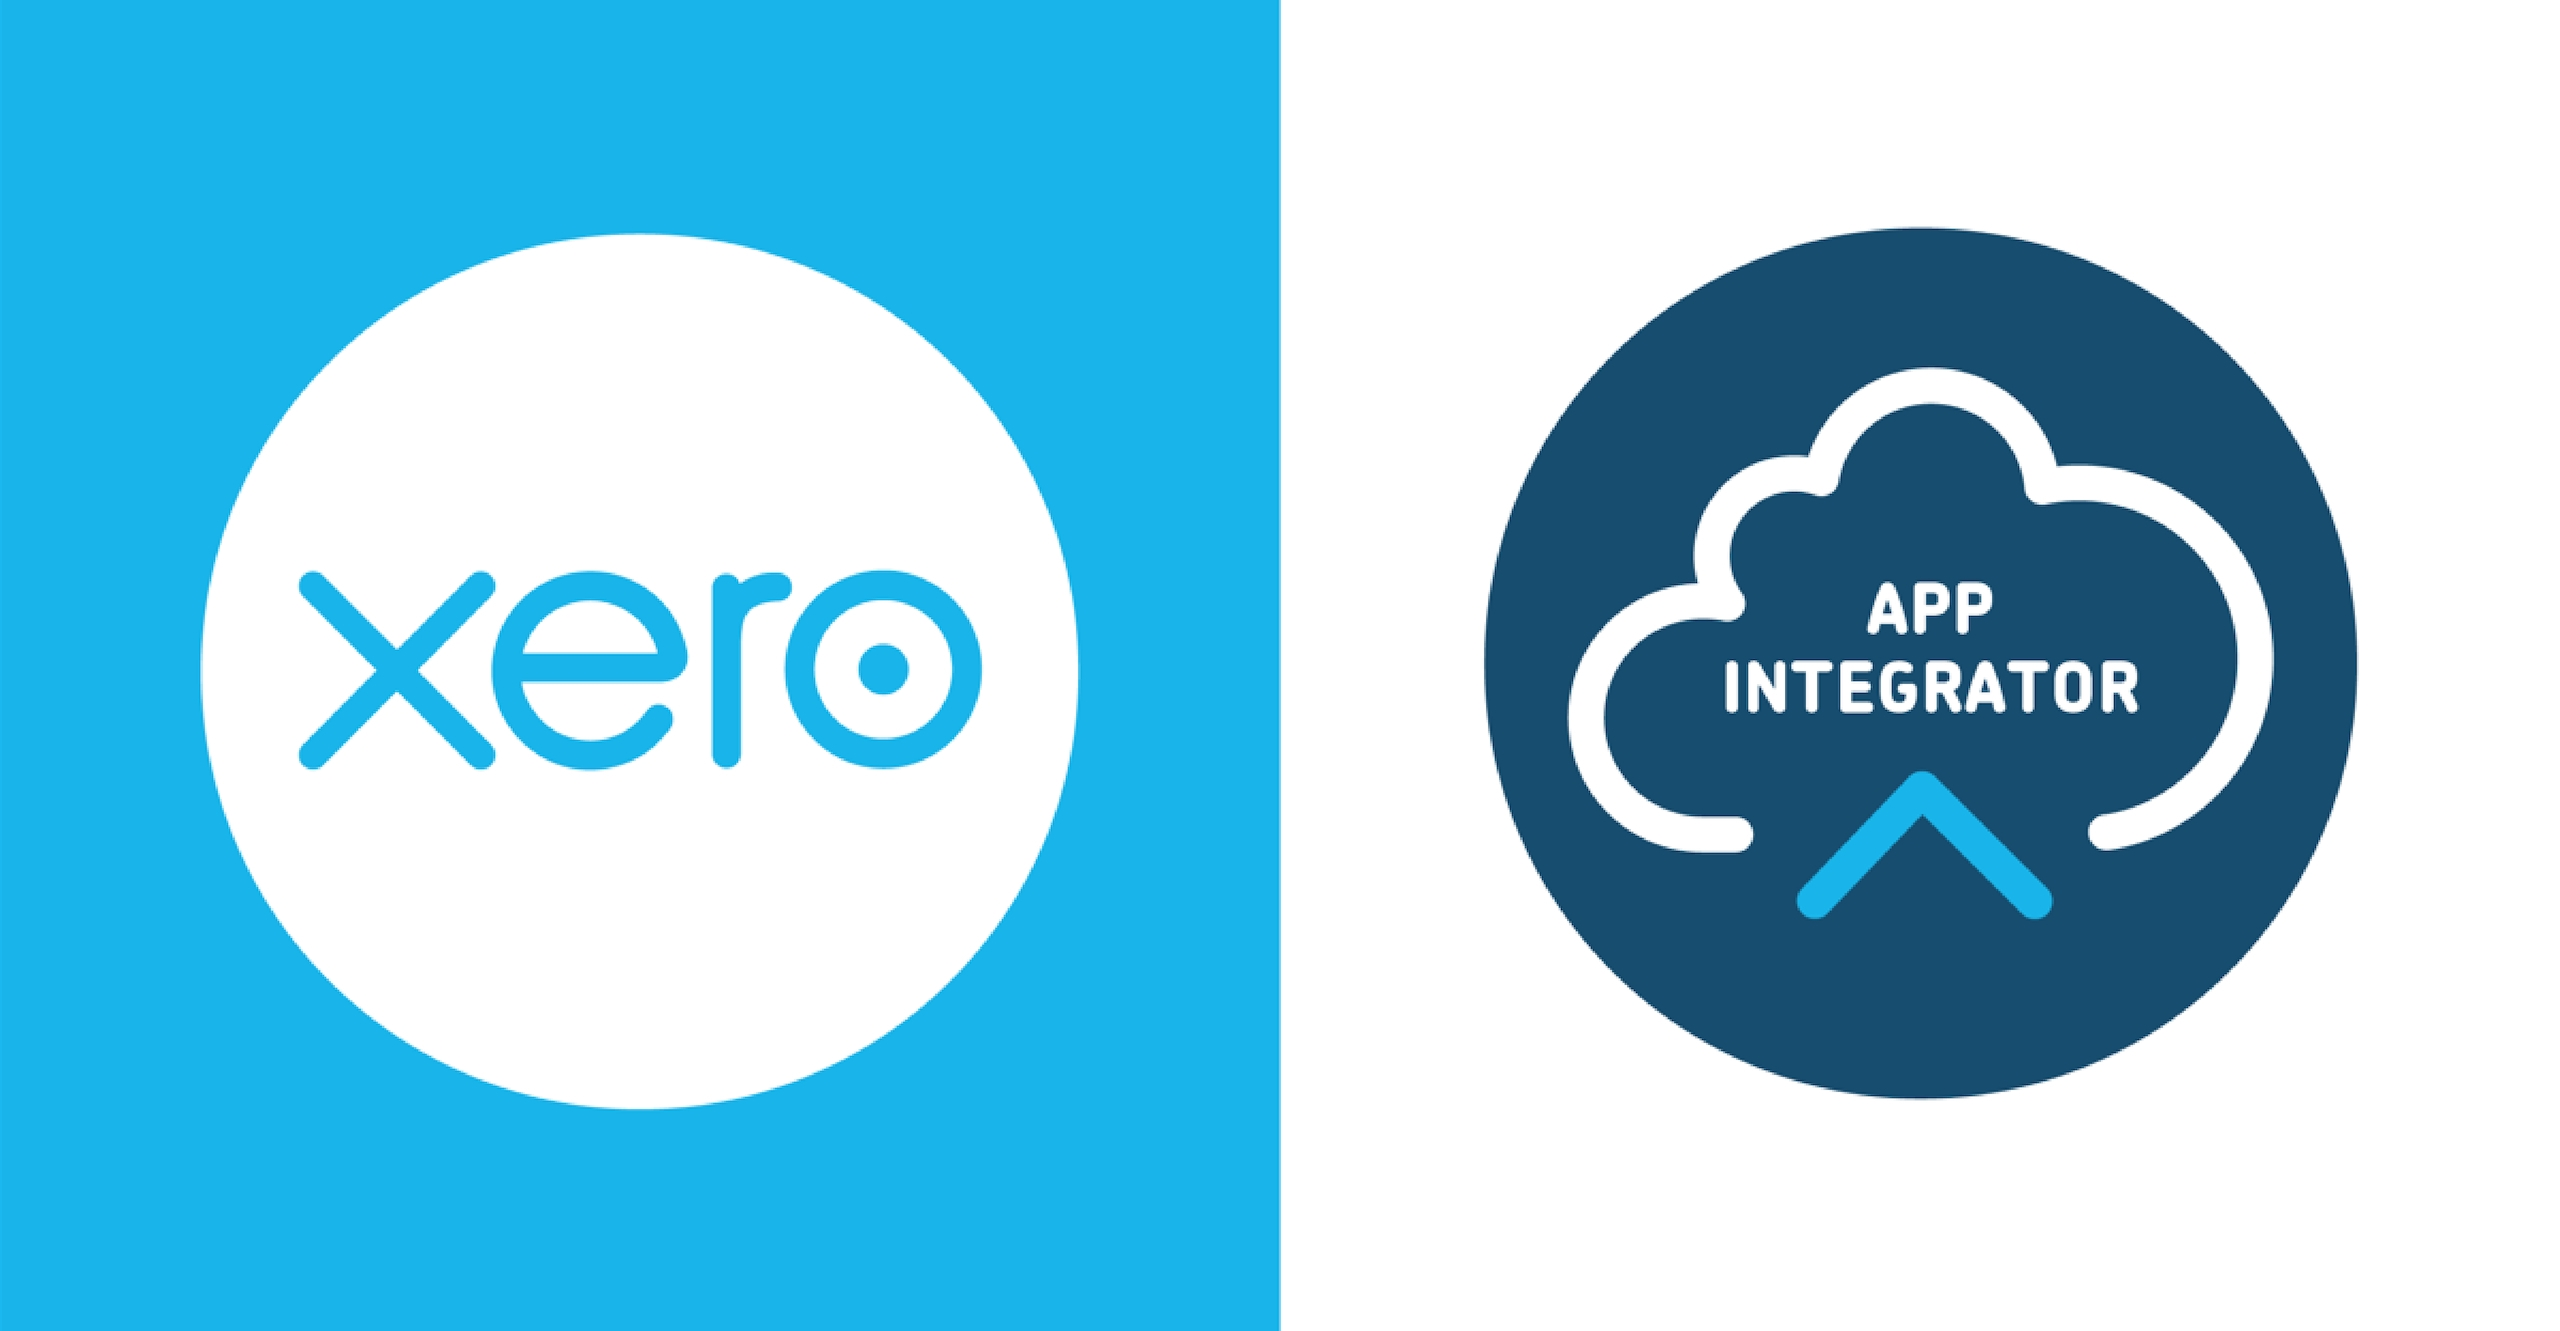 Xero App Integrator Program